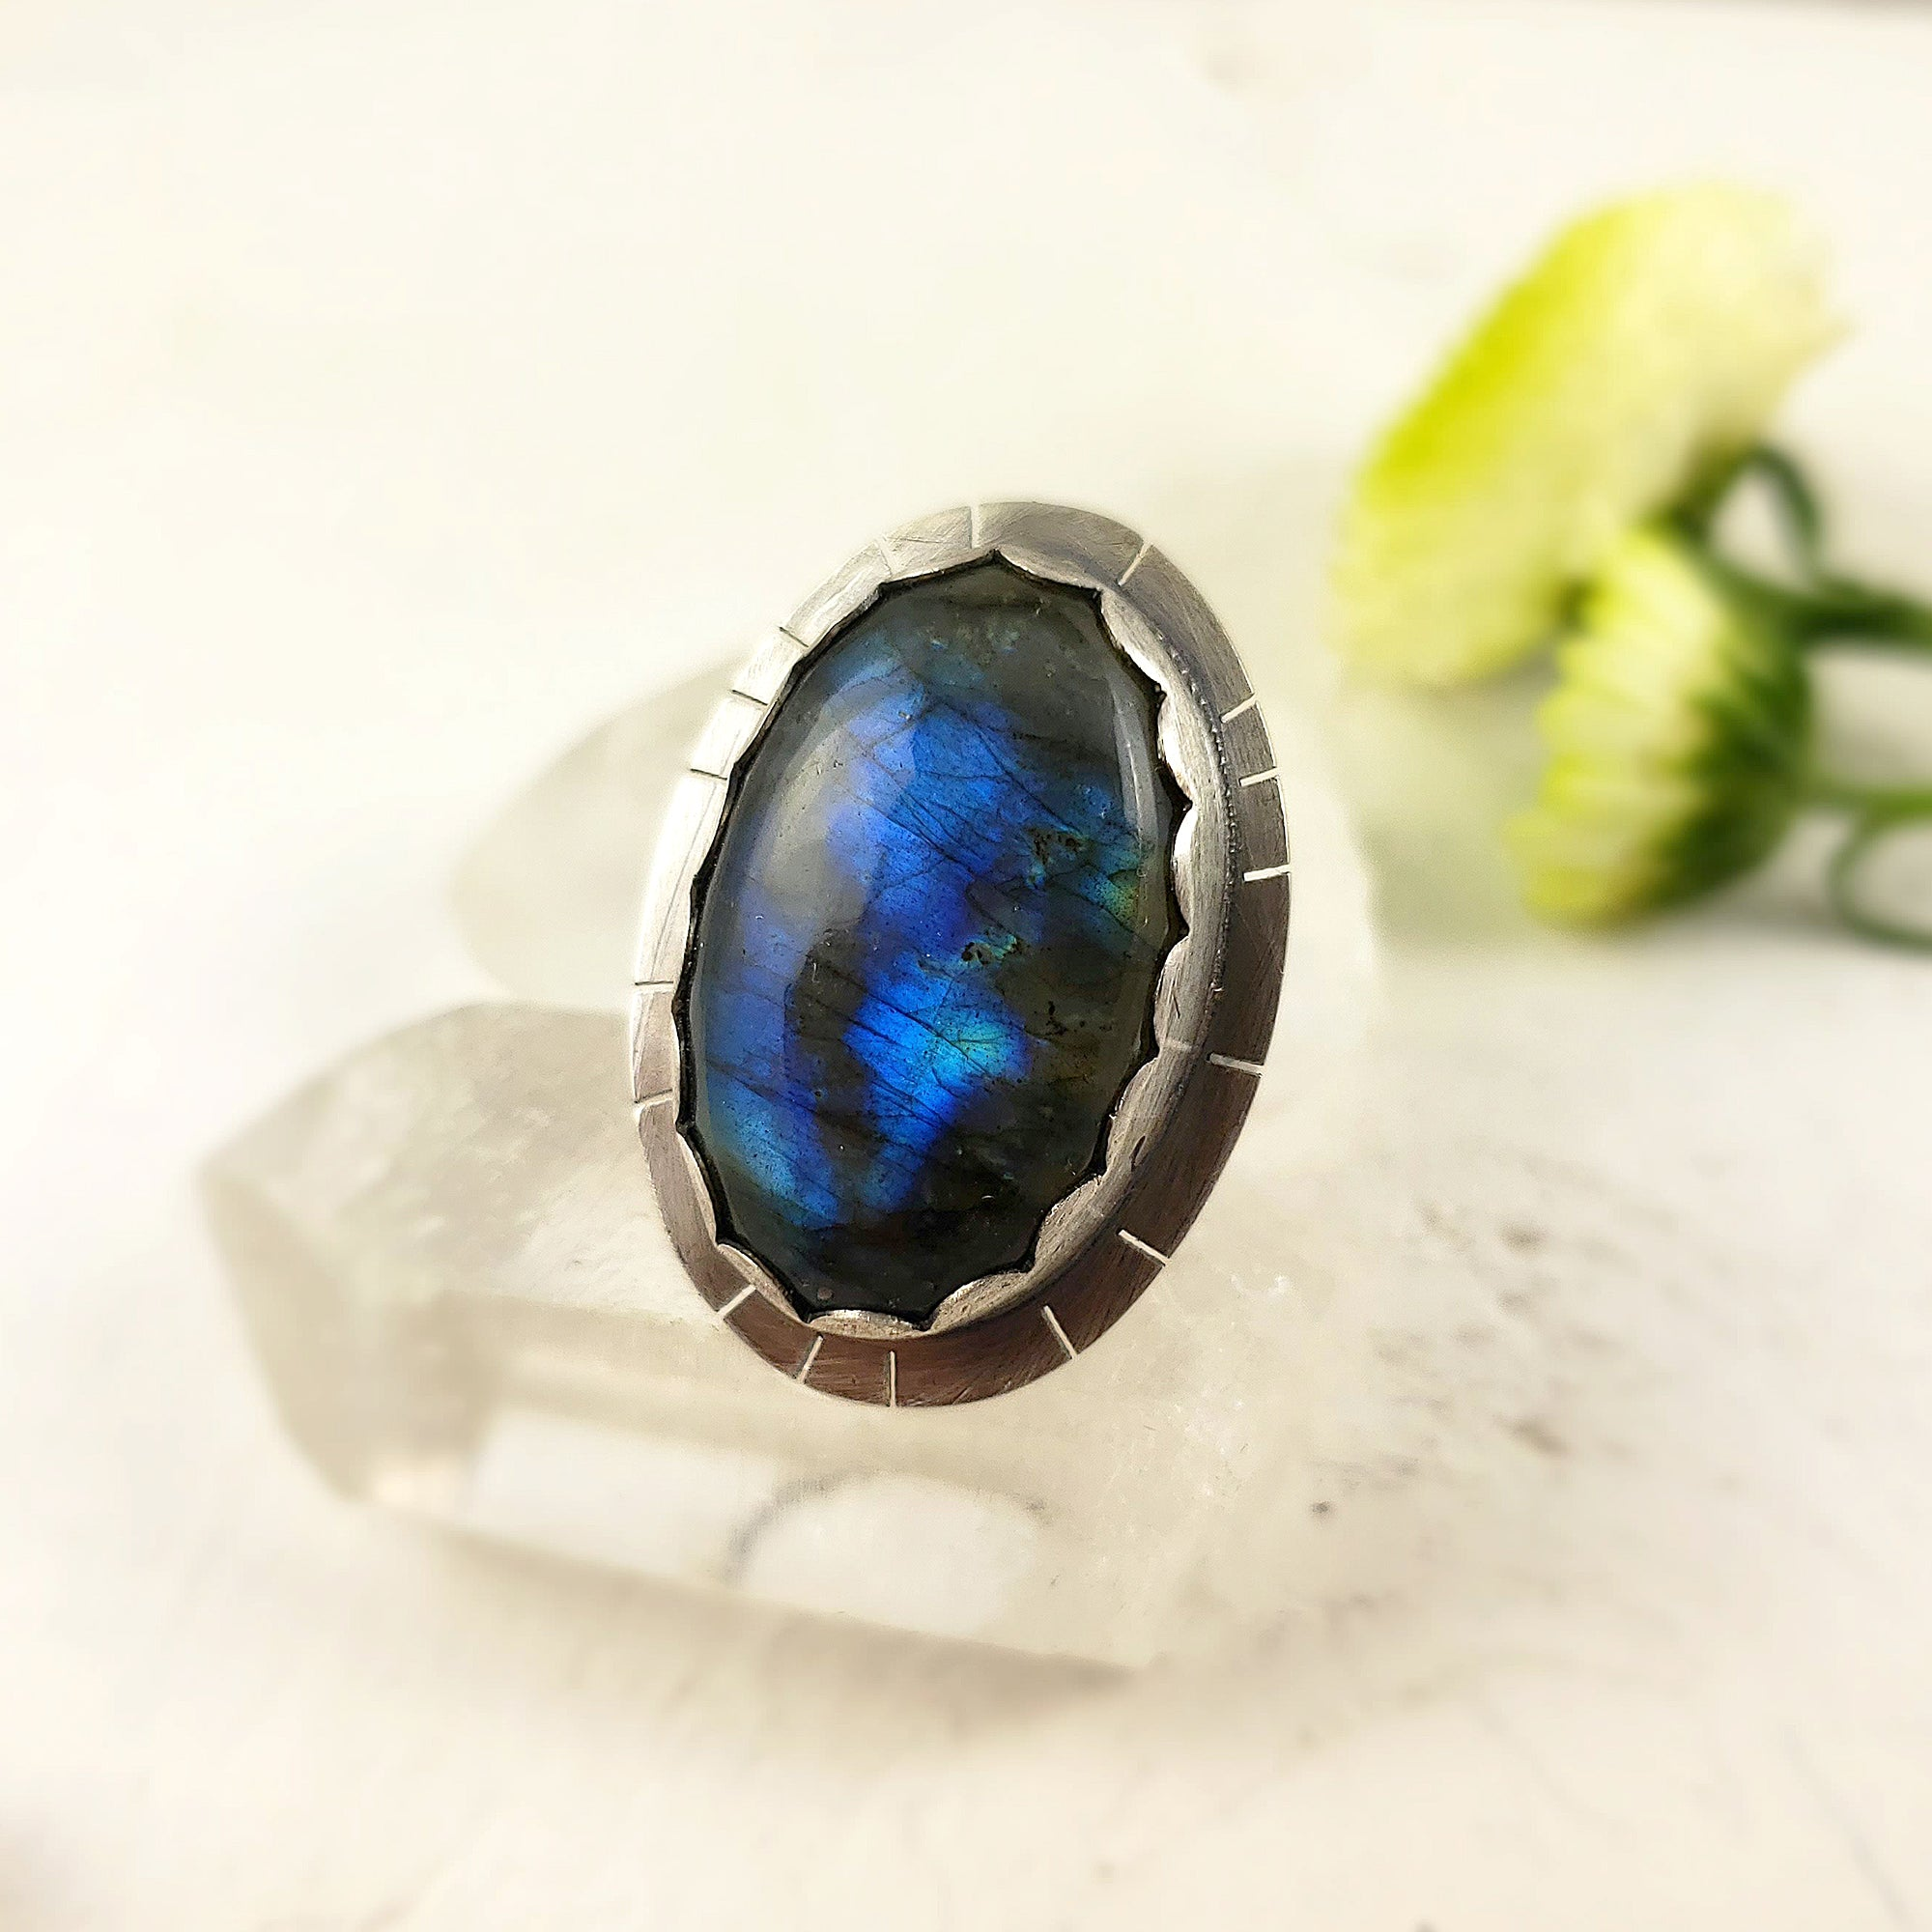 Handmade Oval Labradorite Statement Ring, Size 6.5